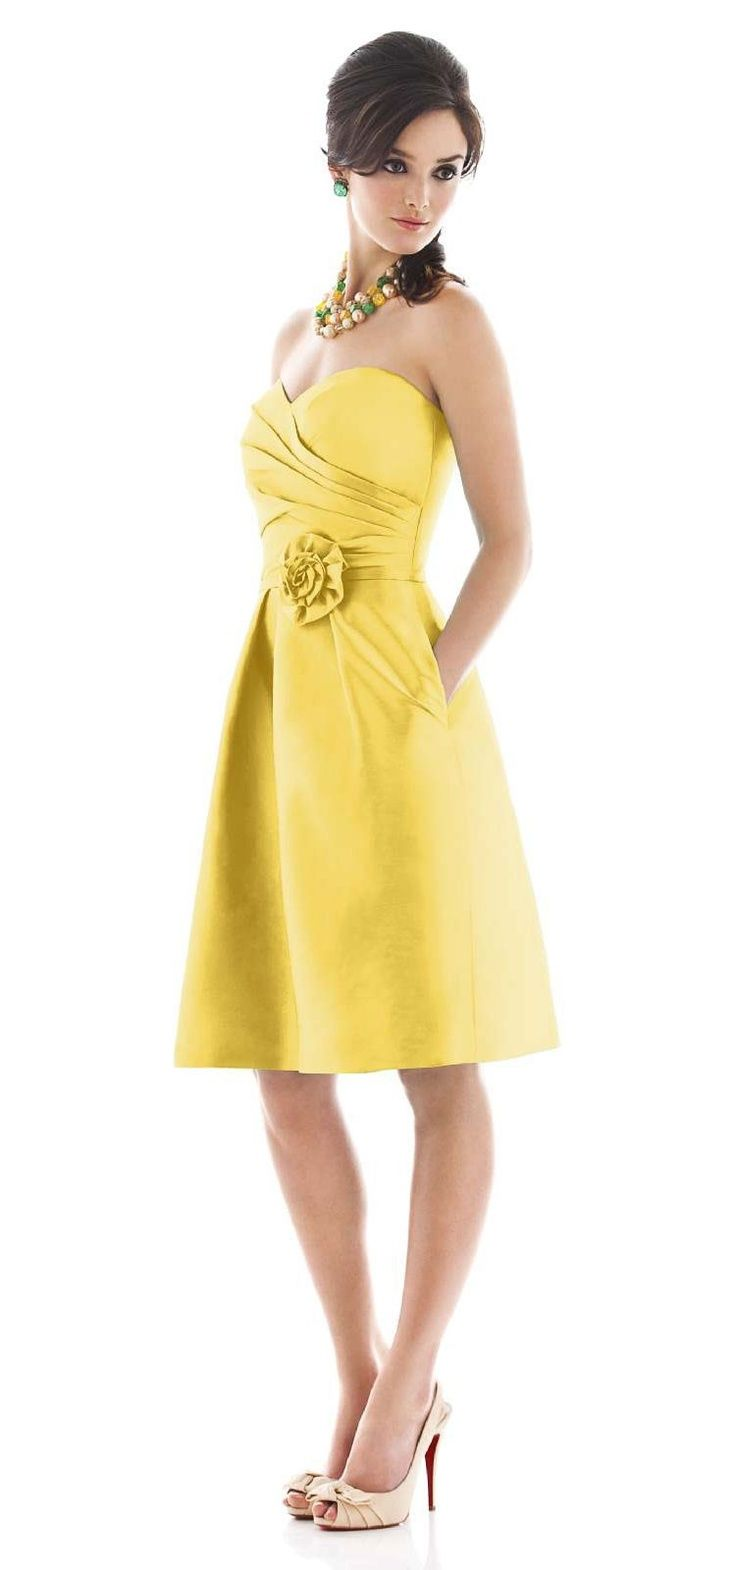 46 best alfred sung images on pinterest alfred sung bridesmaid yellow bridesmaid dress dessy alfred sung ombrellifo Image collections